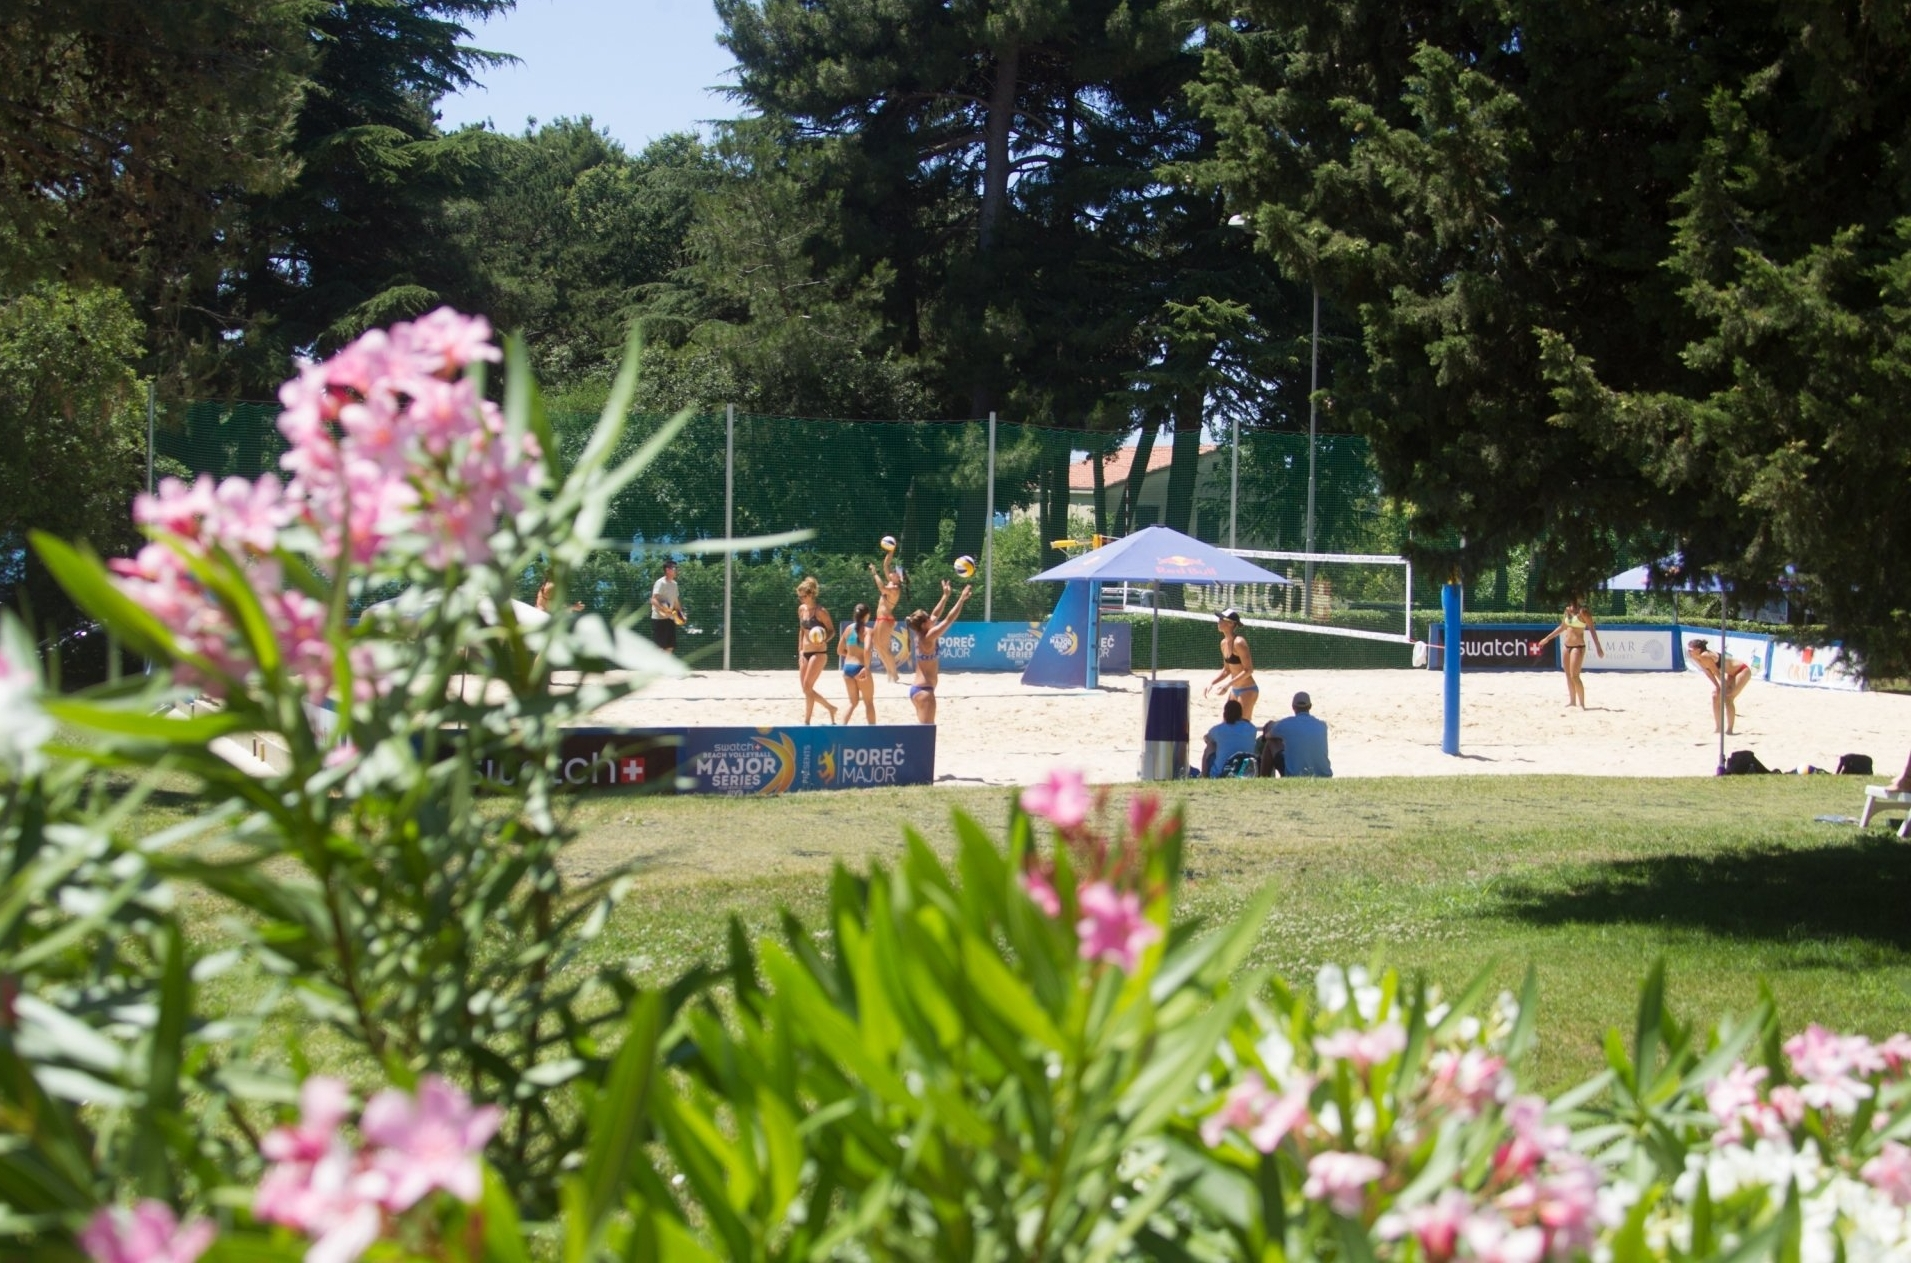 In among the trees at Side Courts 2 and 3 by the Valamar Zagreb Hotel